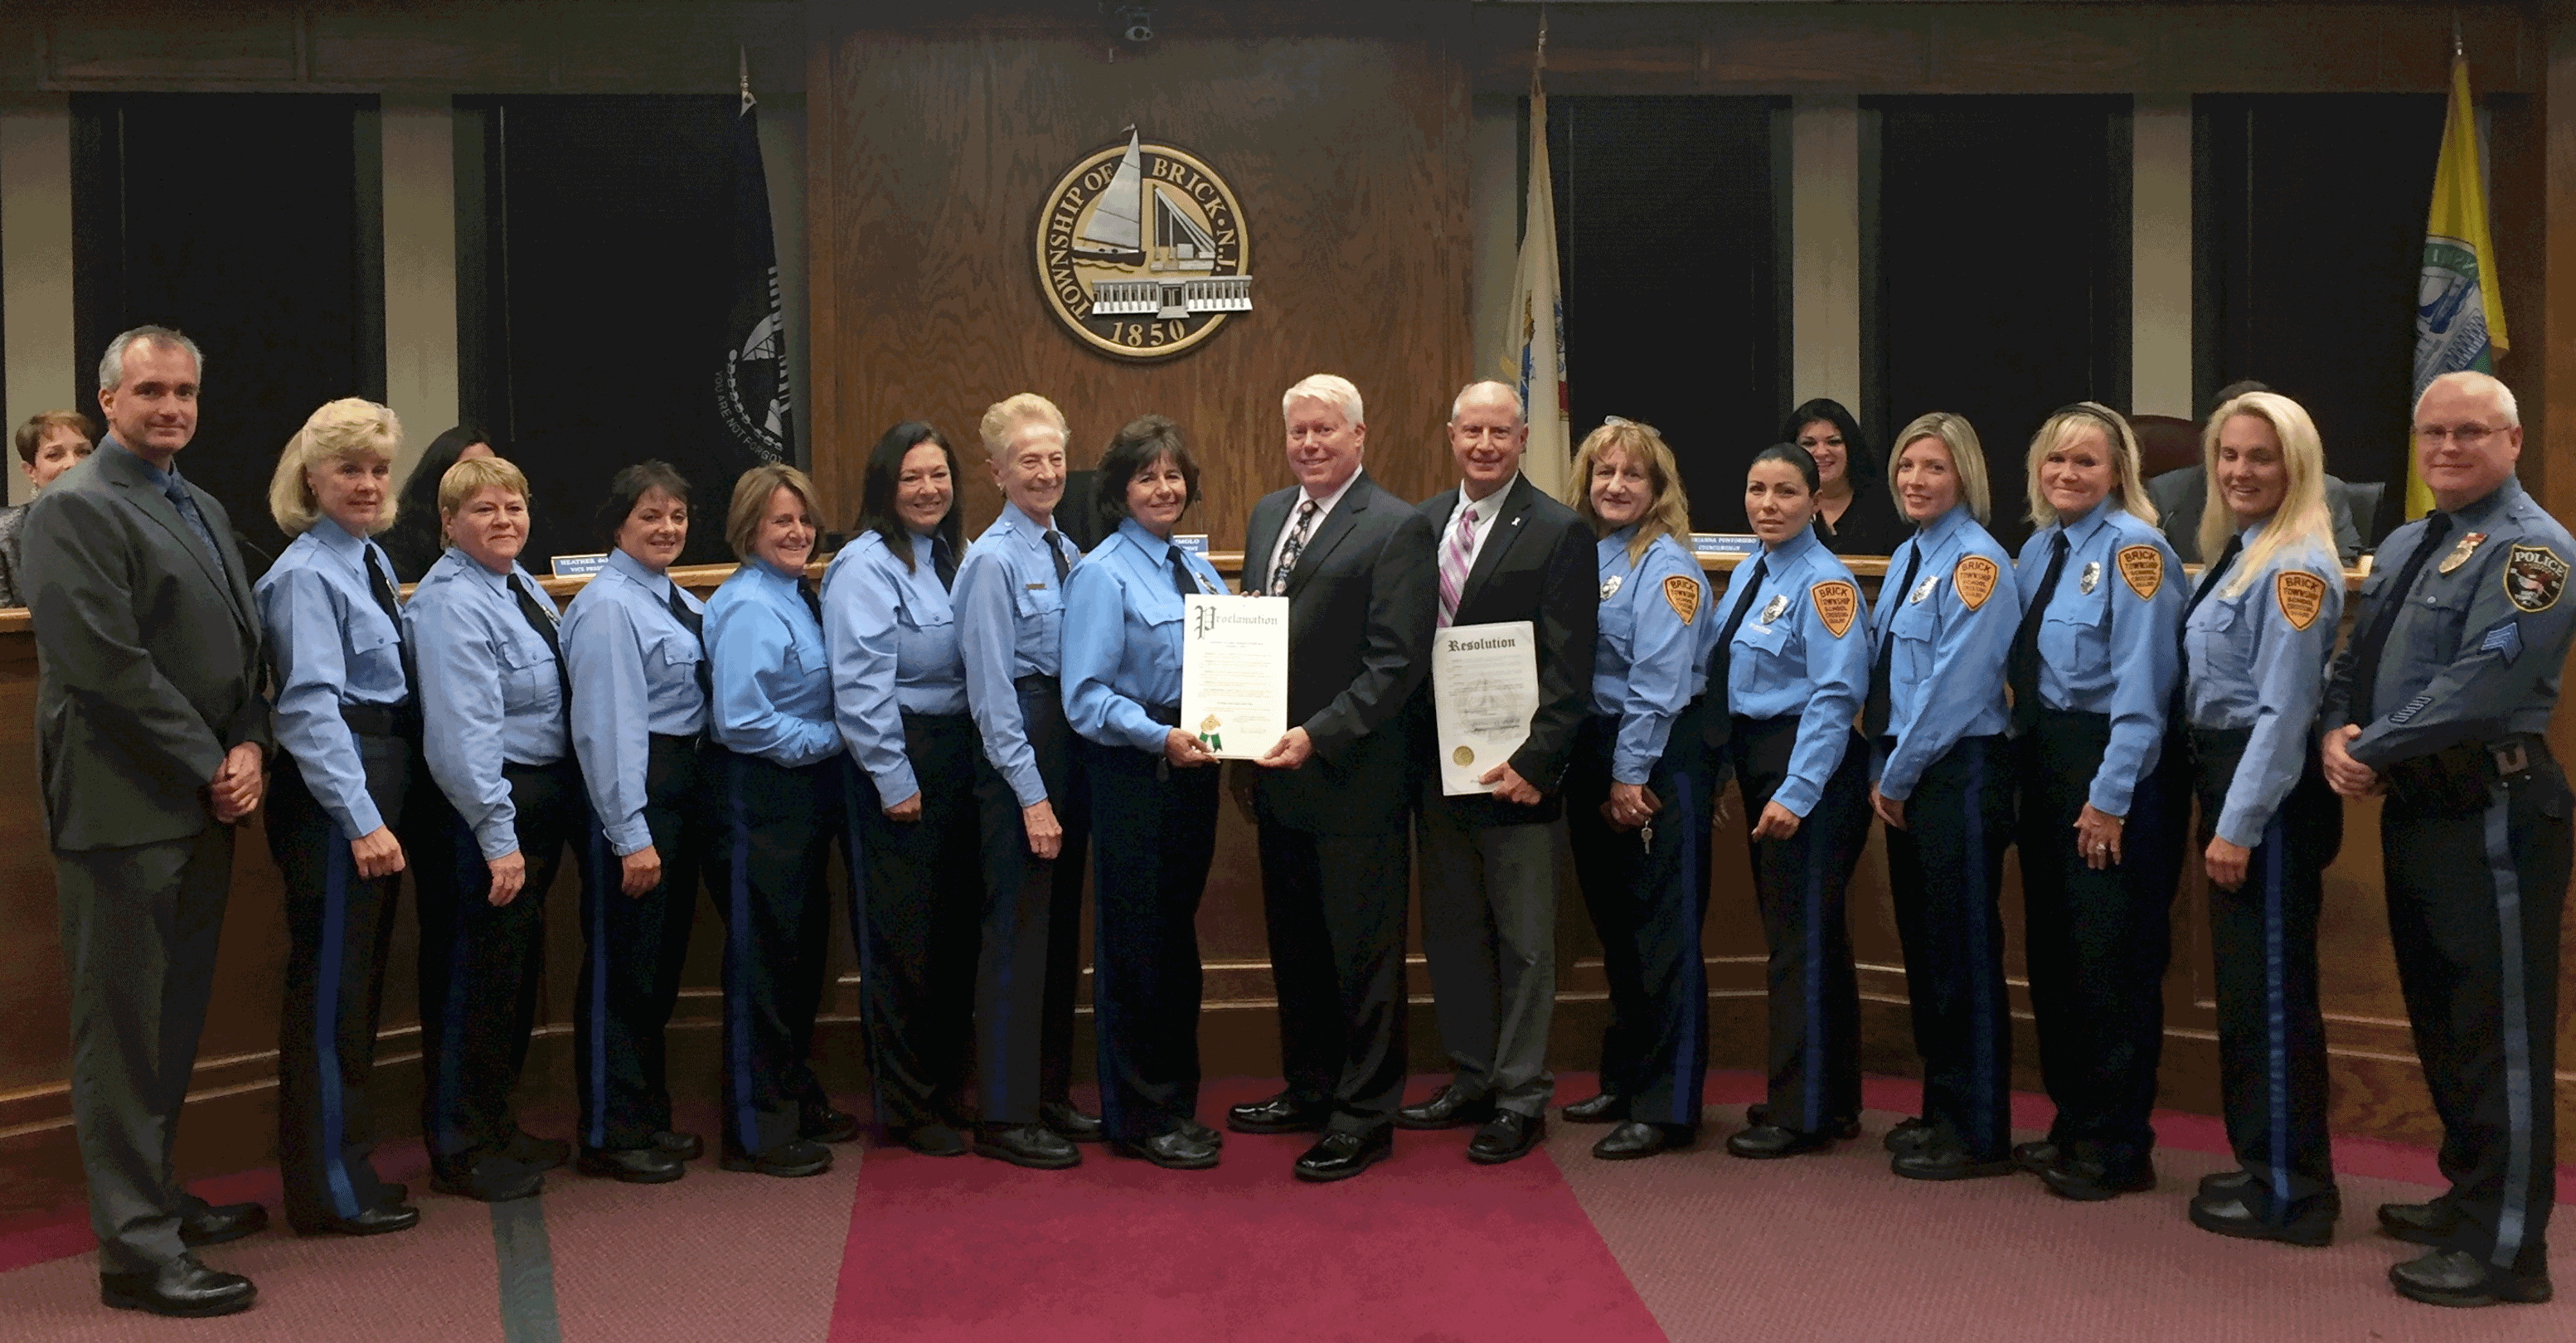 Brick's crossing guards are honored by township officials, Oct. 7, 2015. (Photo: Daniel Nee)